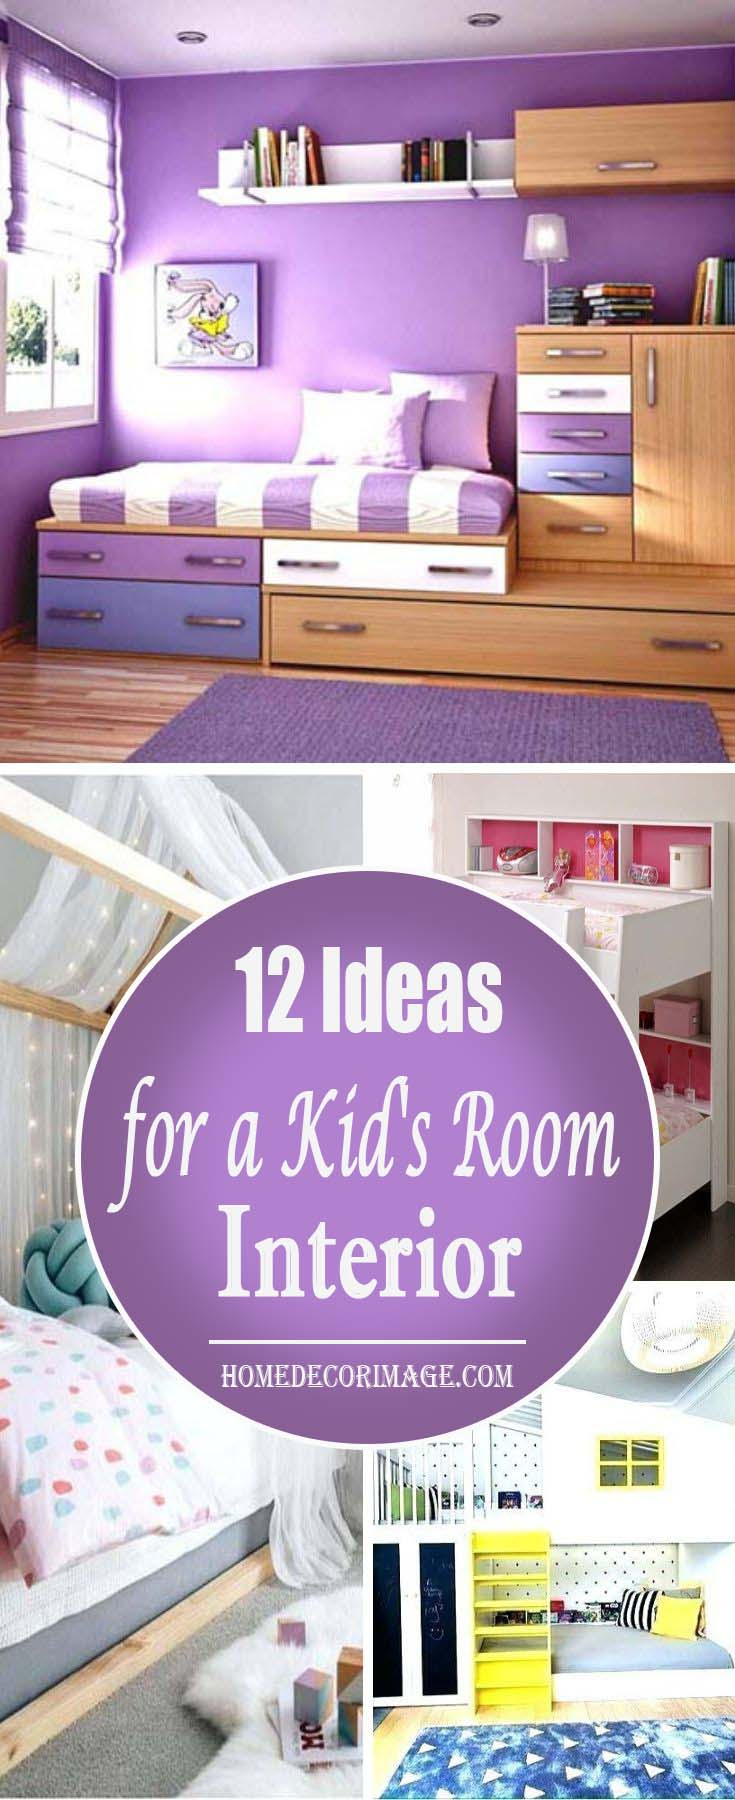 The Kid's Room Interior–12 Inspiring Ideas to Design #kid's room #interior #homedecorimage